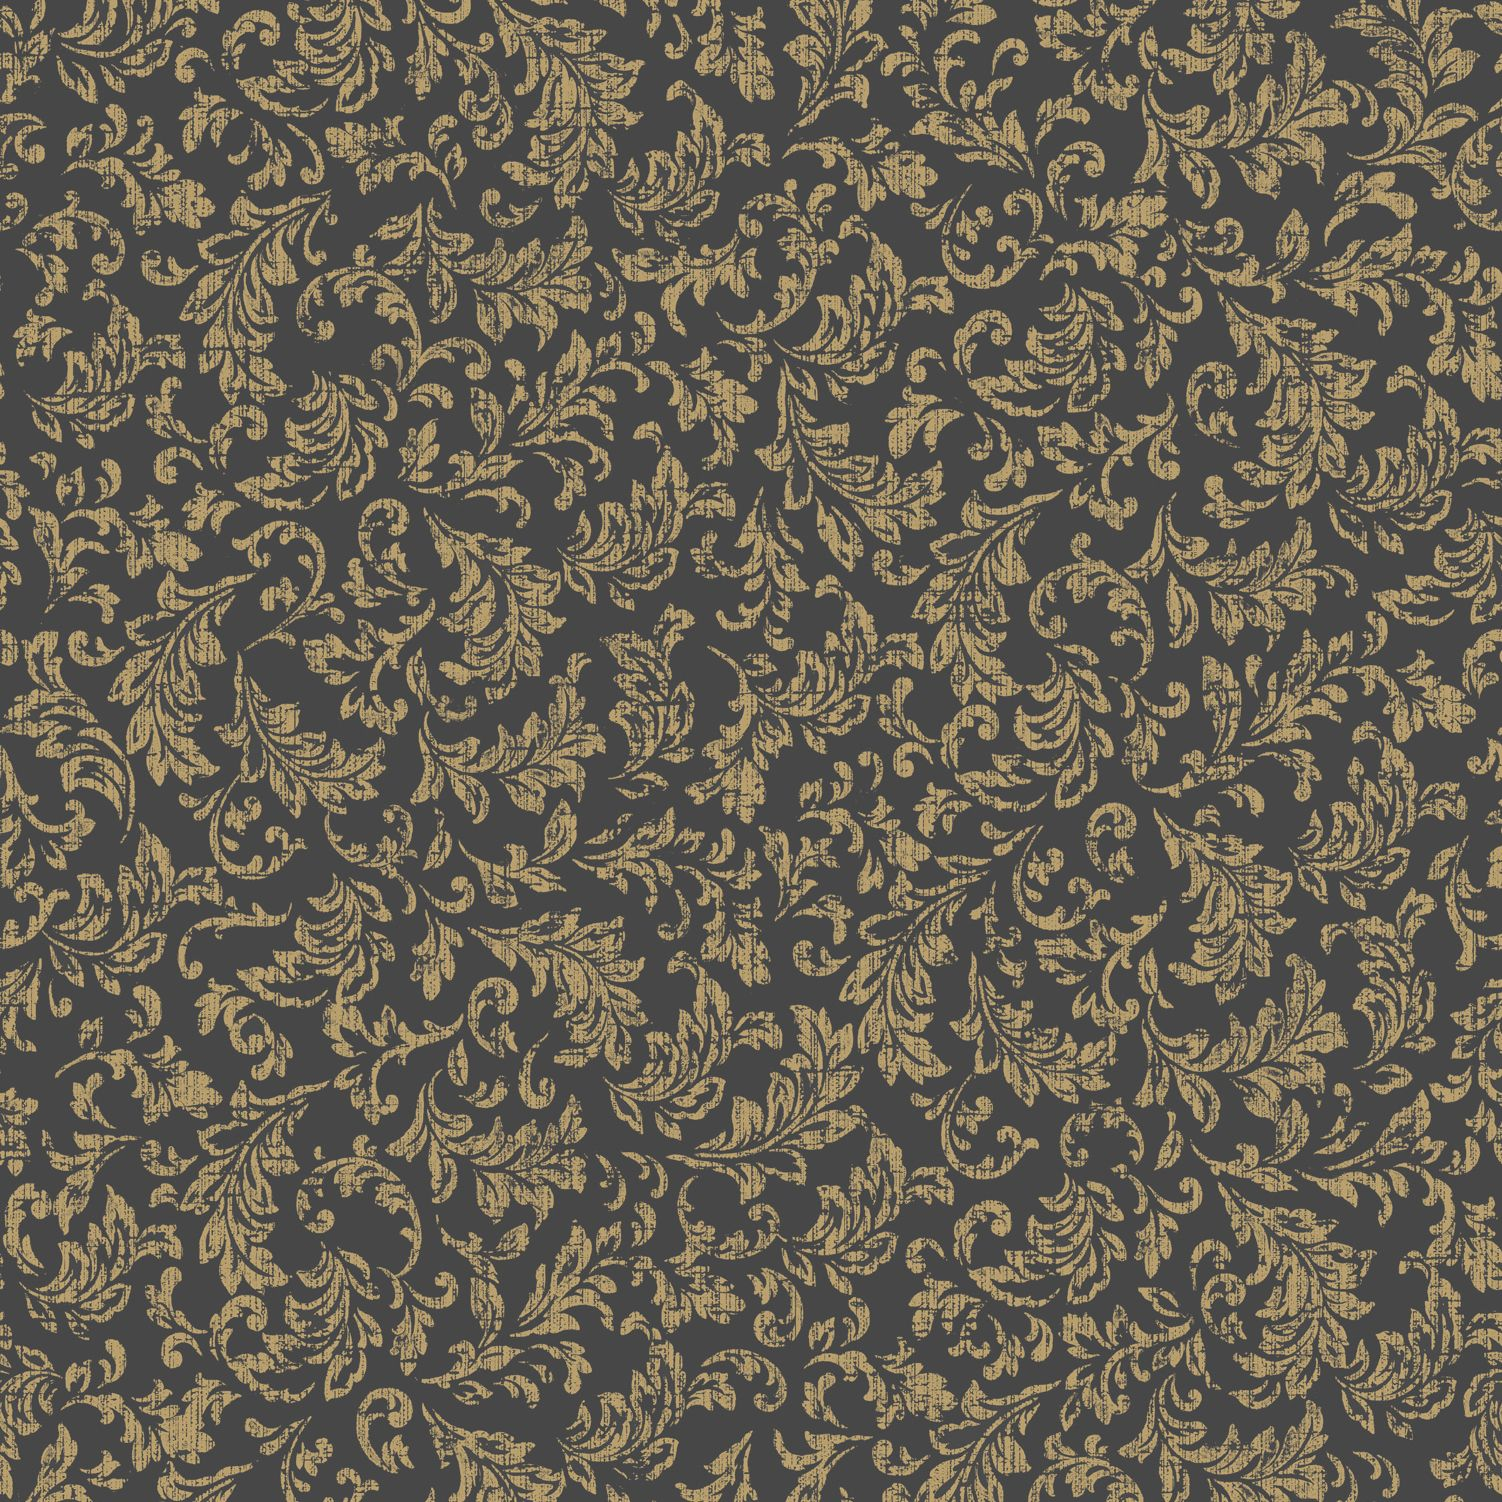 K2 Sasha Black Gold Effect Geometric Wallpaper